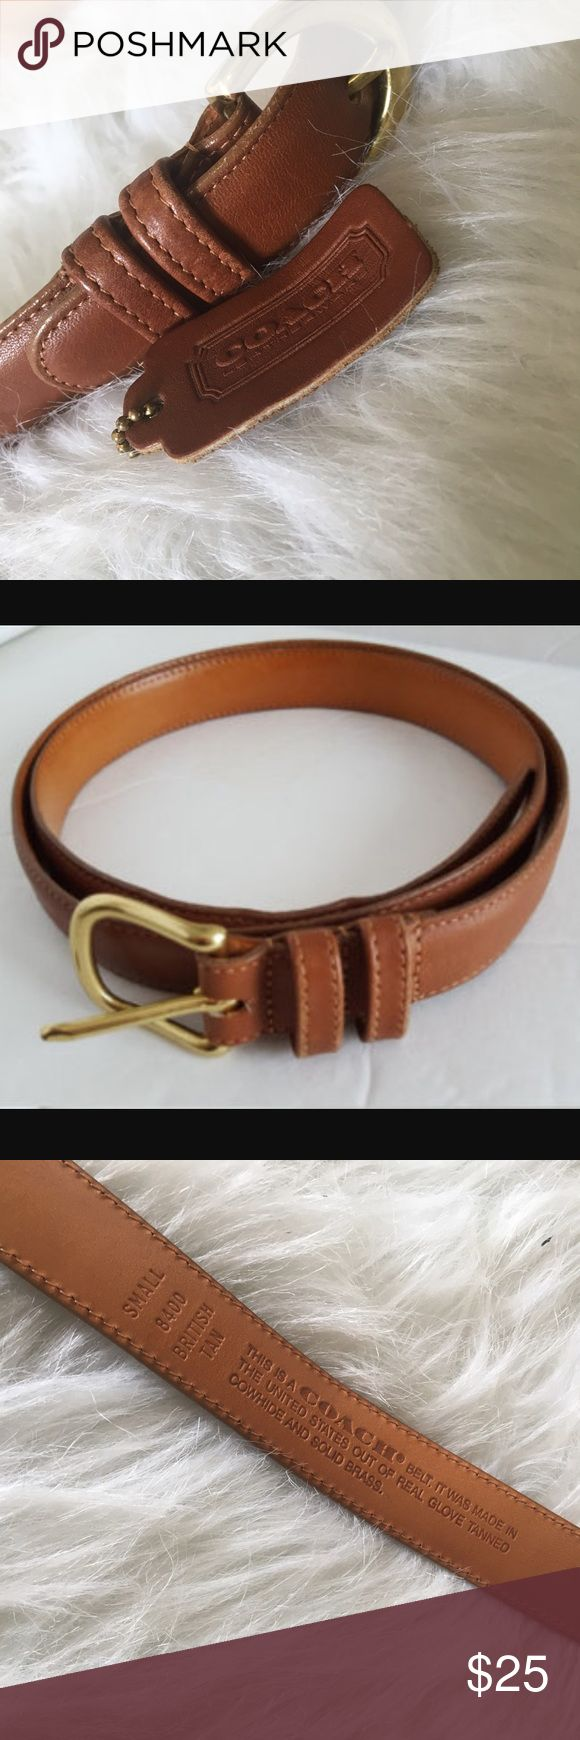 Coach Leather Tan Belt A size small tan leather belt by COACH Made in The US. The belt has some 2 small scratches as you can see on the pictures, but noticeable when wearing it measure 32in. Long but fits more sizes like 22-26. Coach Accessories Belts